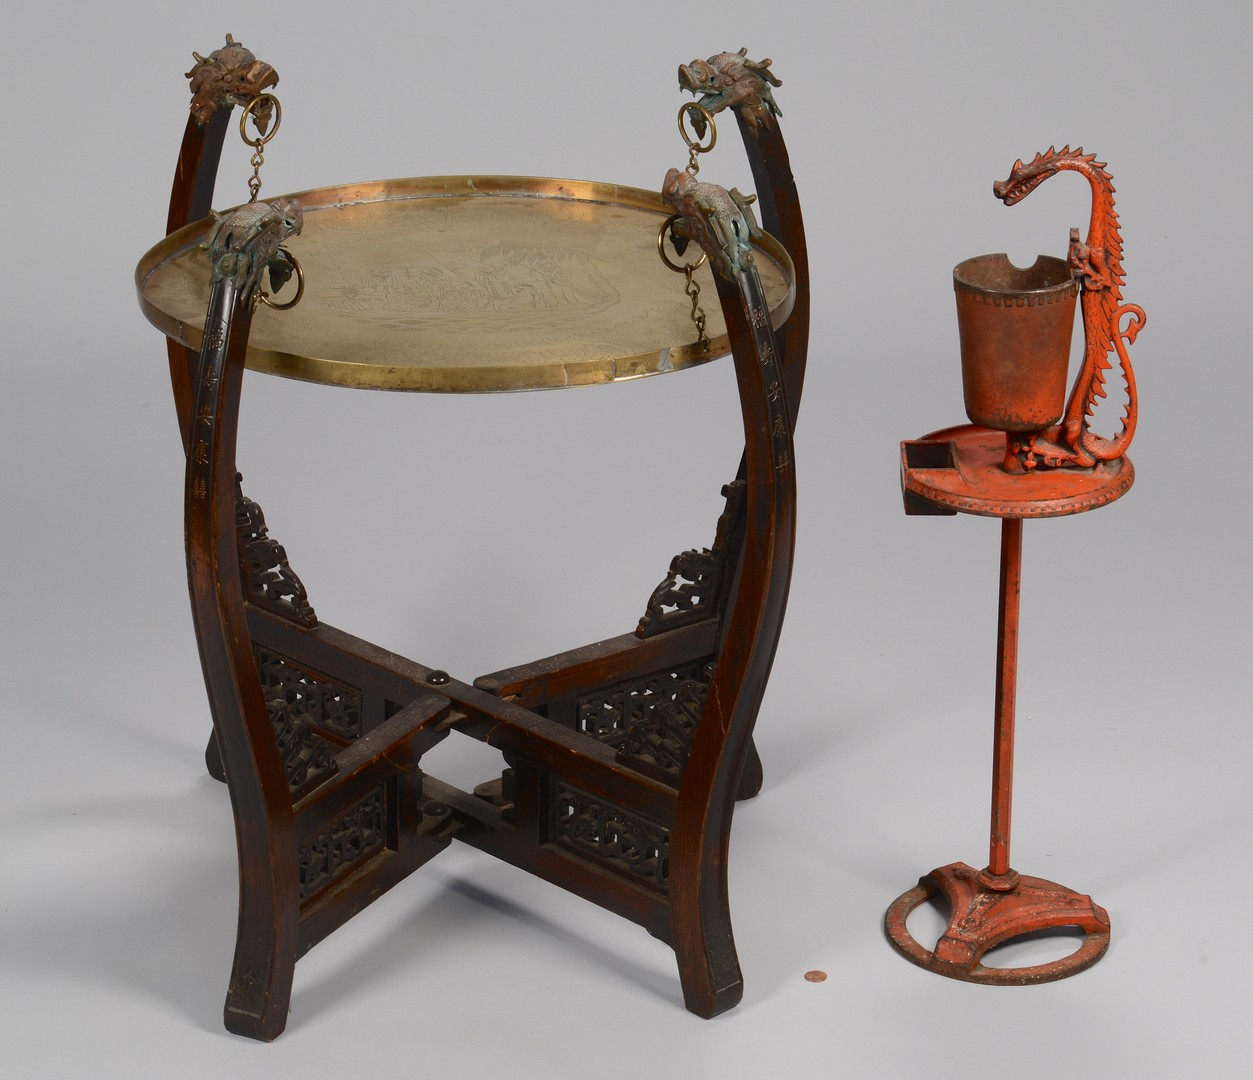 Lot 3594245: Chinese Brass Top Table & Smoking Stand w/ Dragon